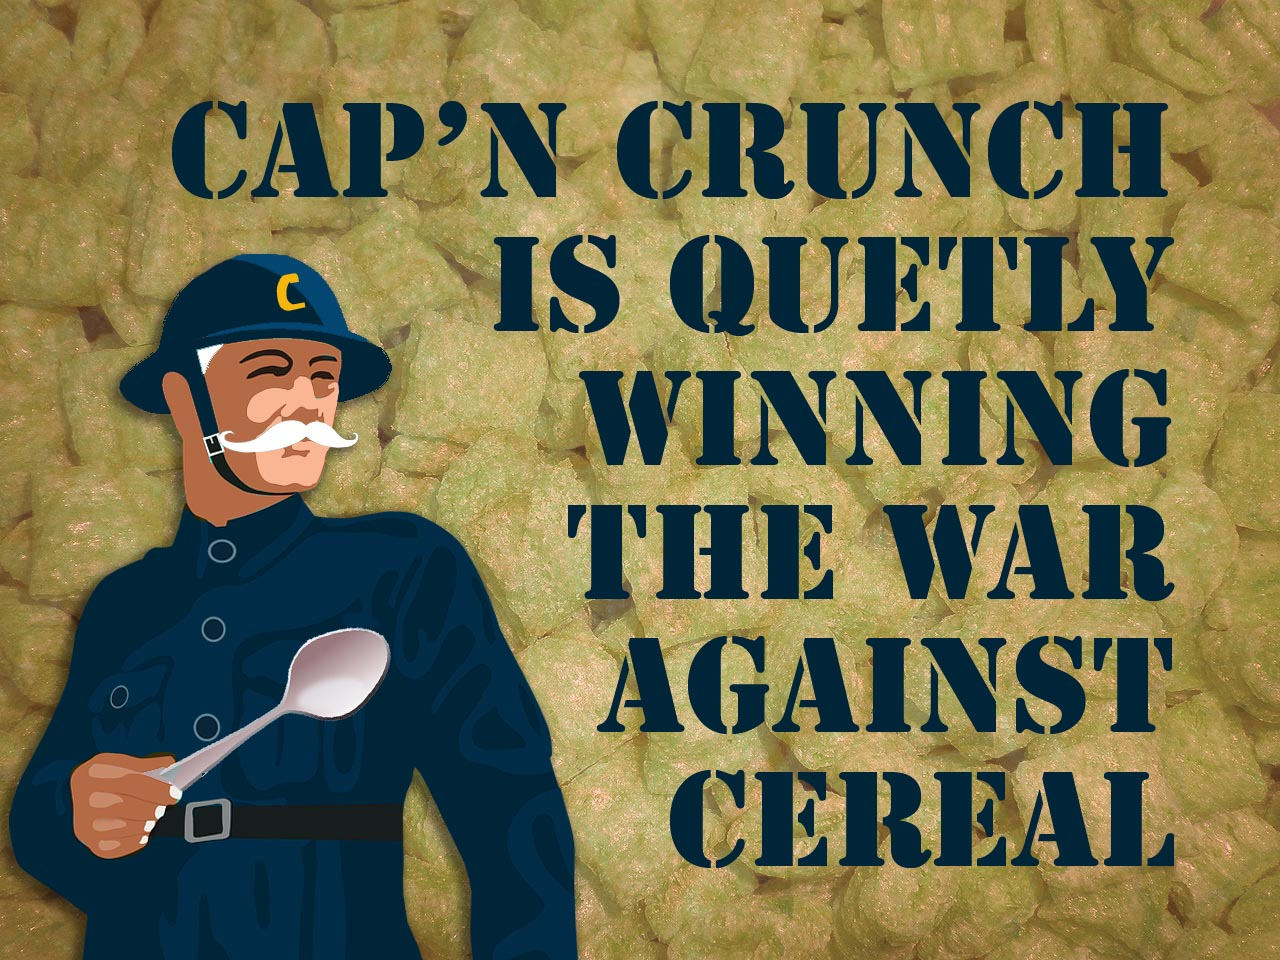 Captain Crunch Oops All Berries Font : You can vote for oops!